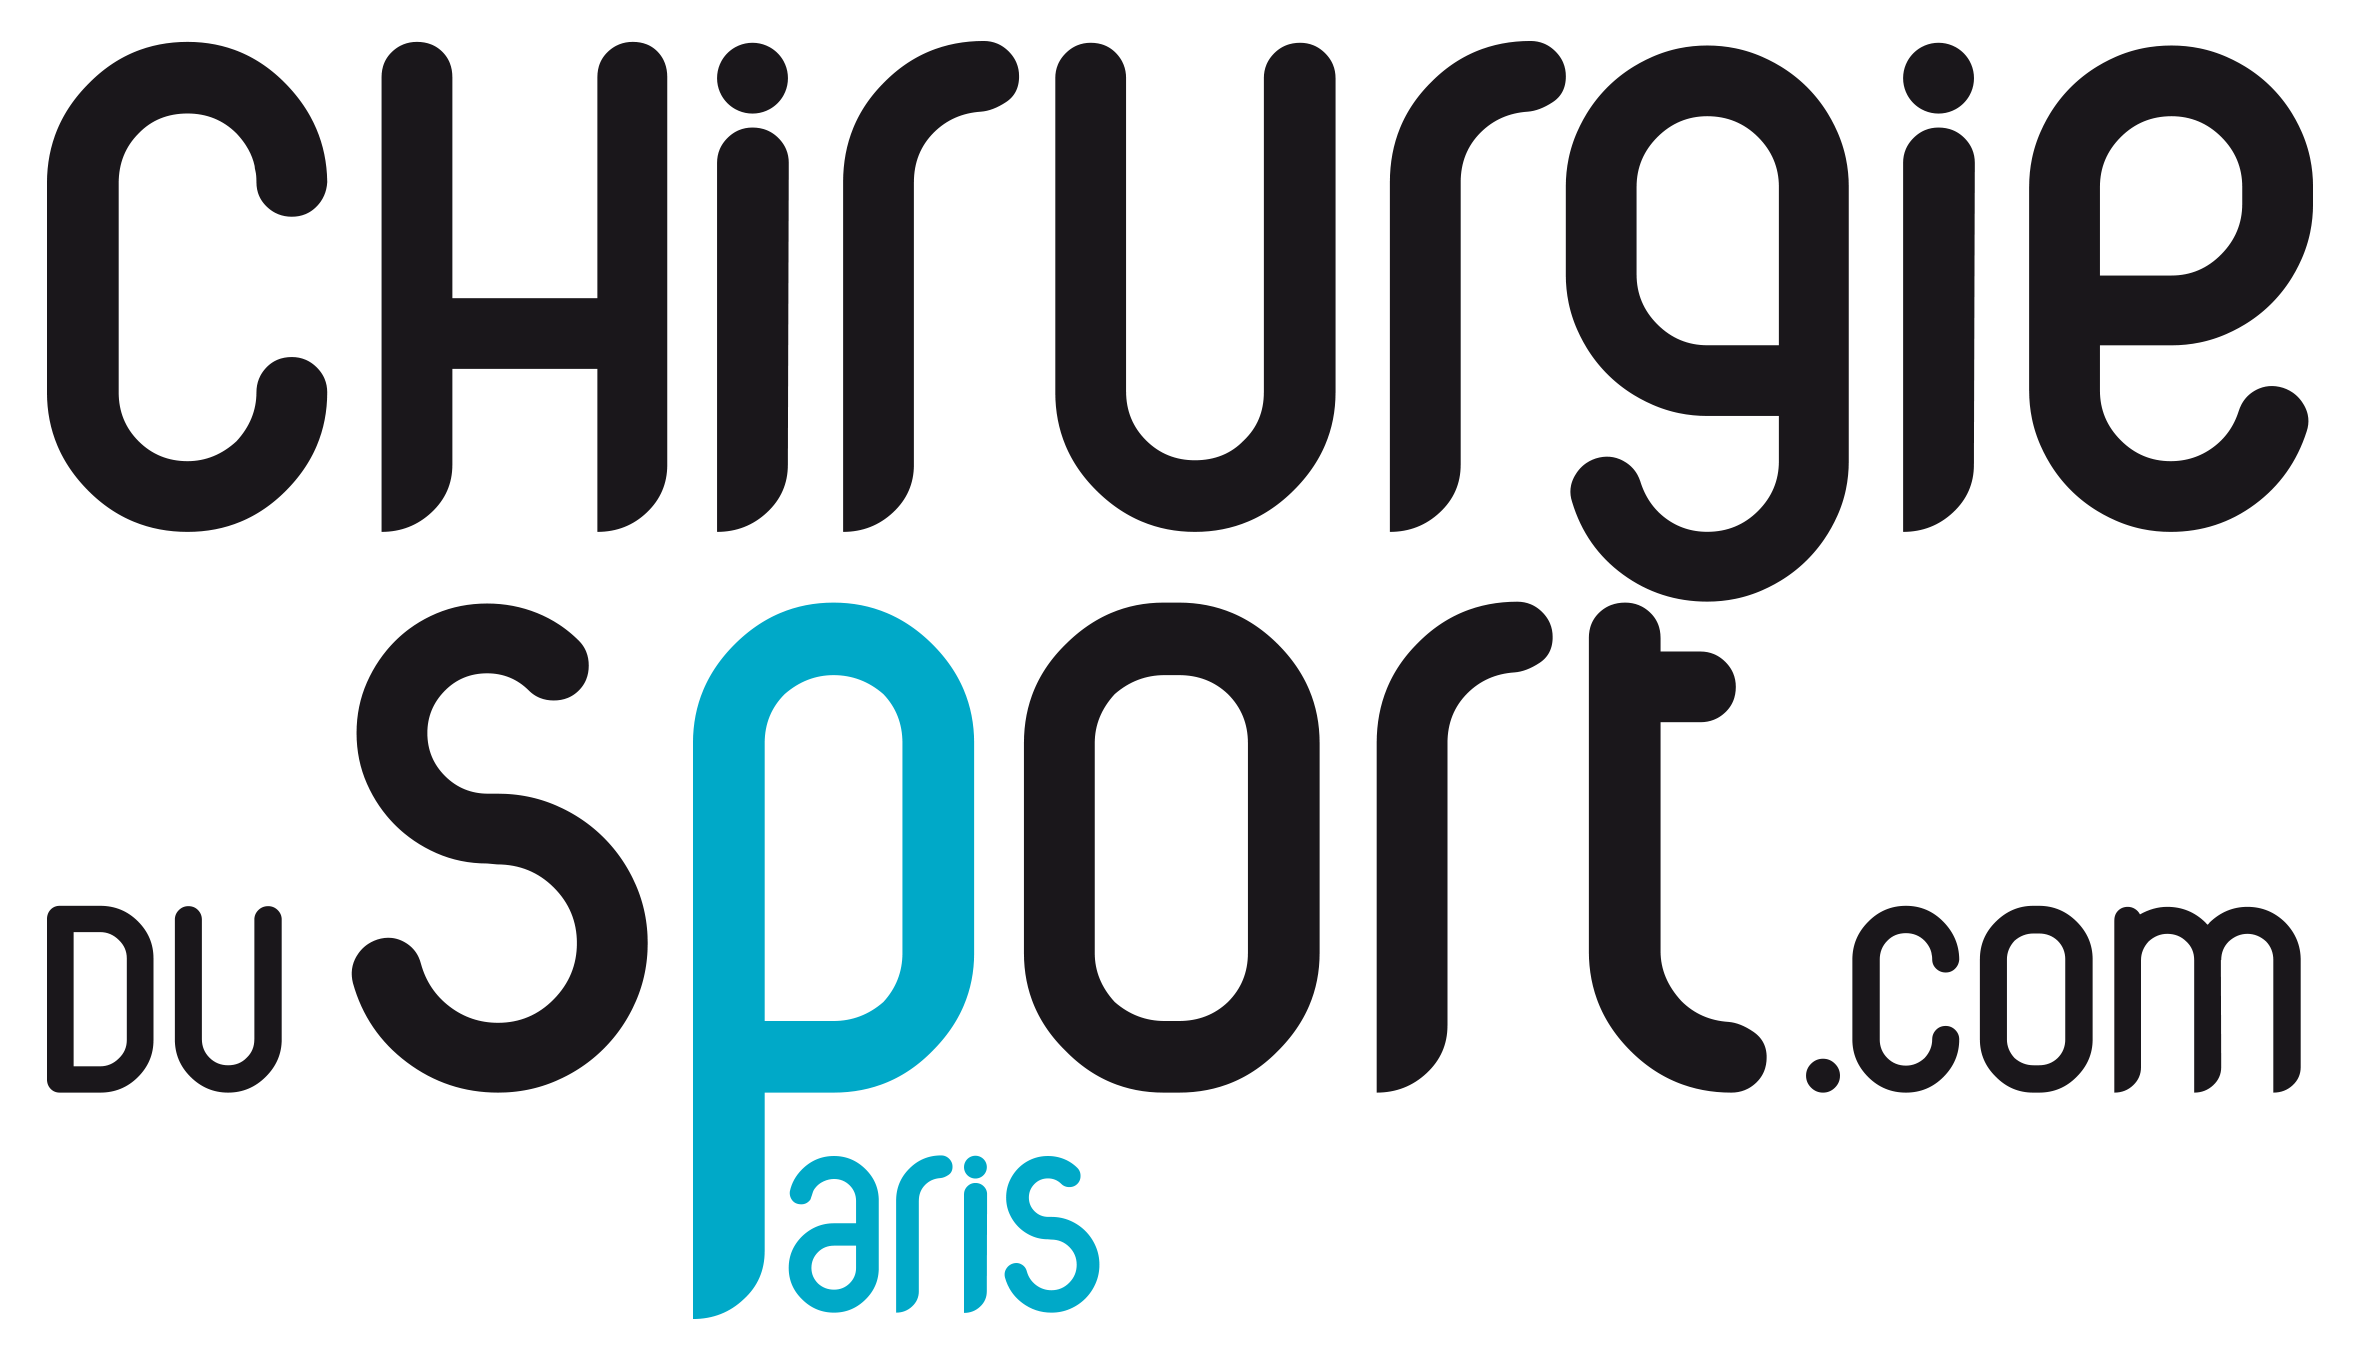 clinique du sport à Paris